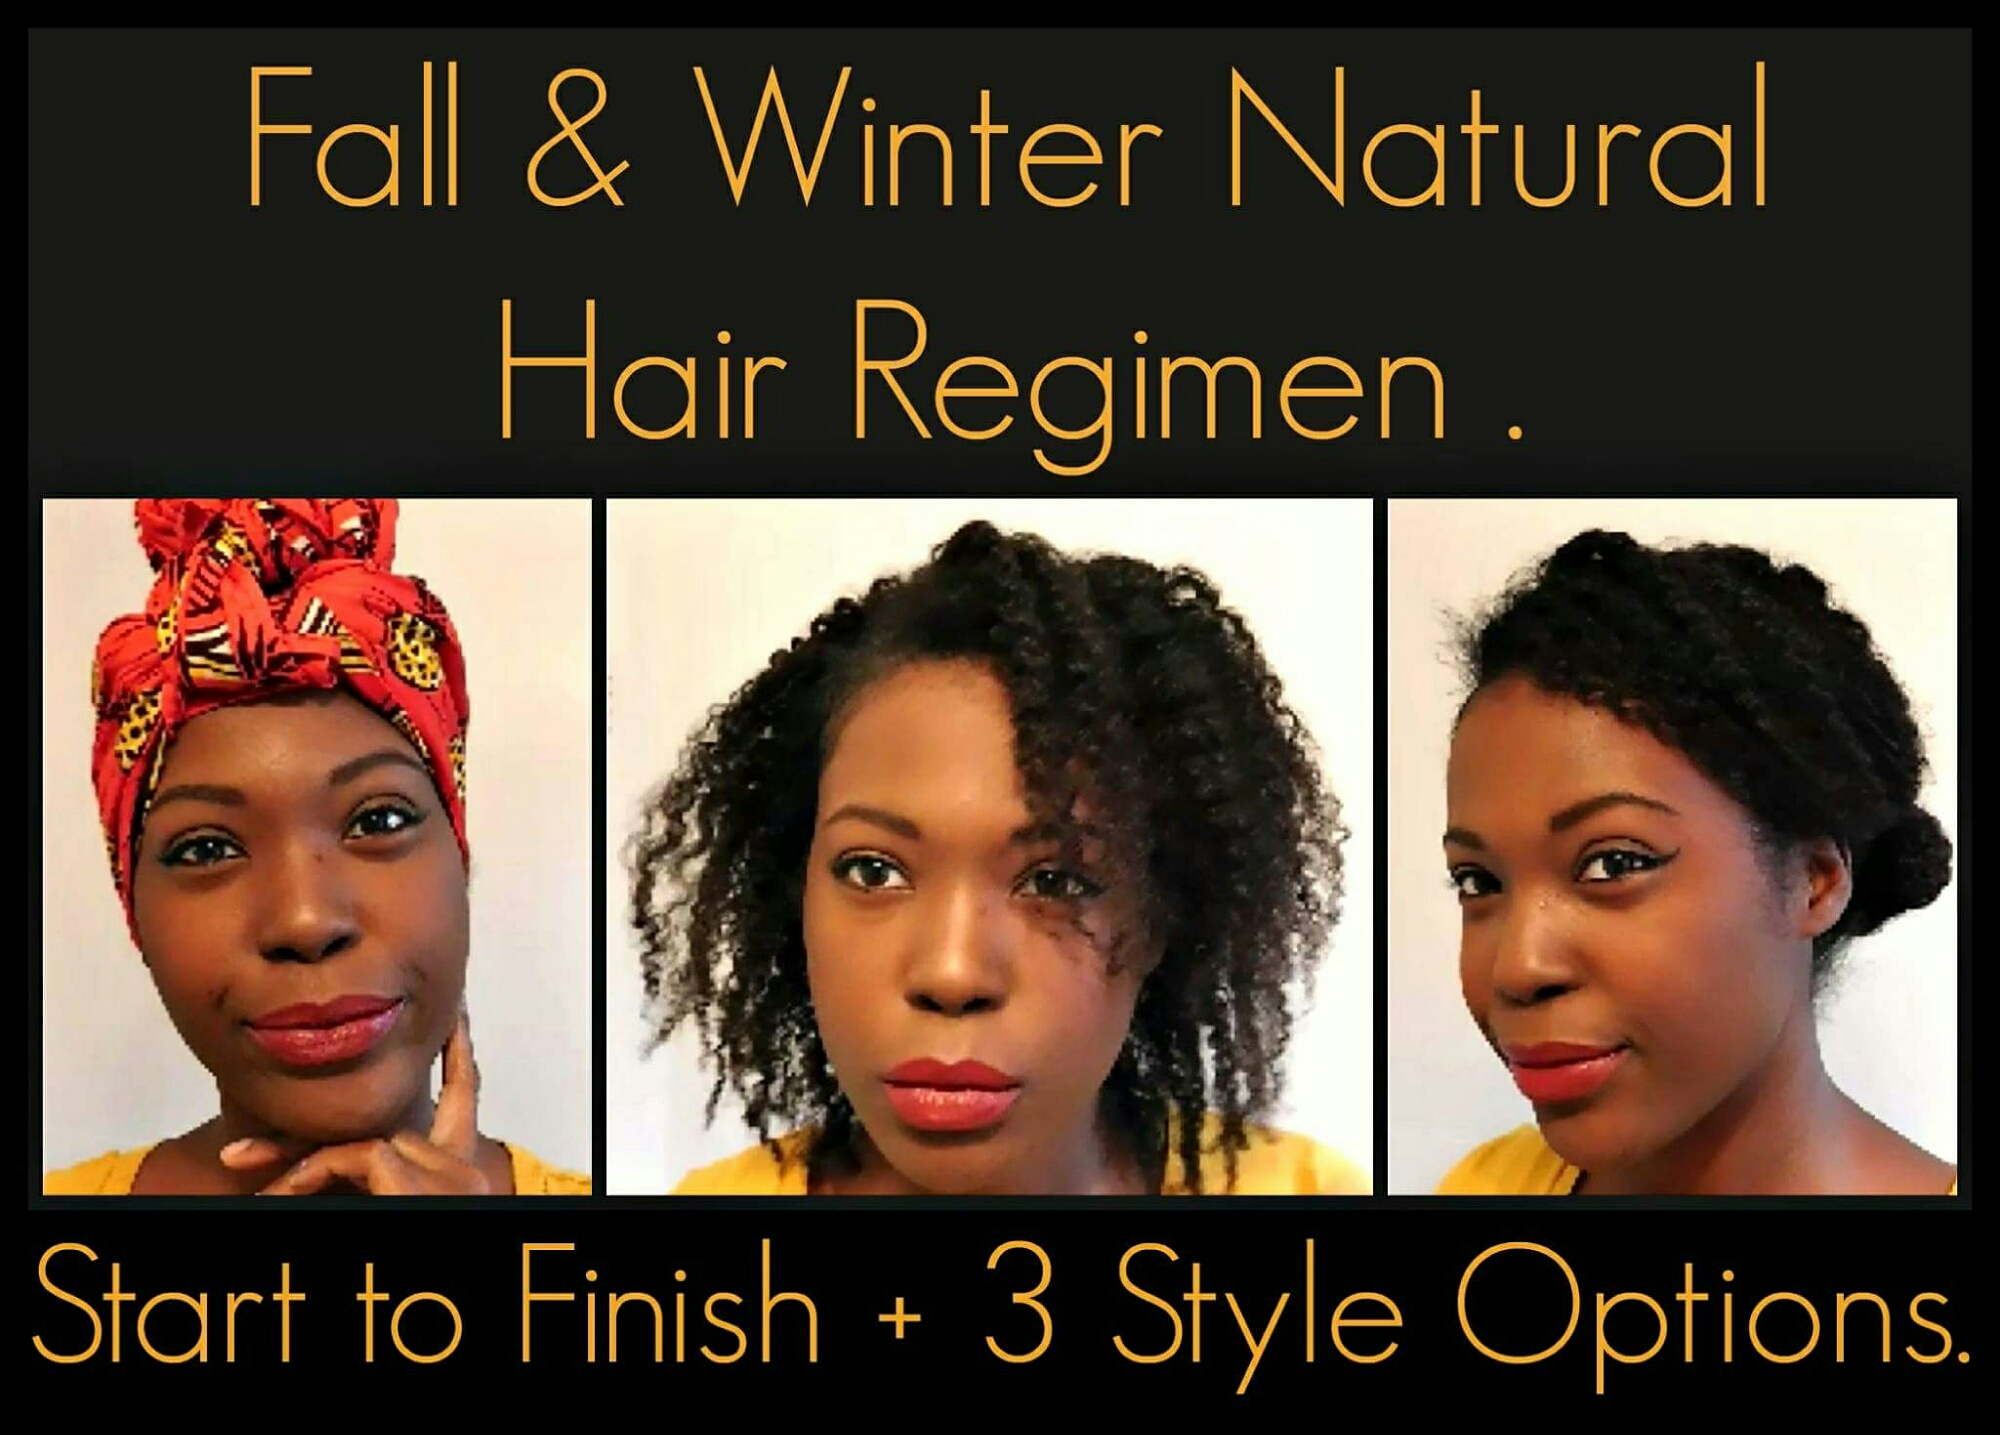 Fall & Winter Natural Hair Regimen| Start to Finish + 3 Style Options.